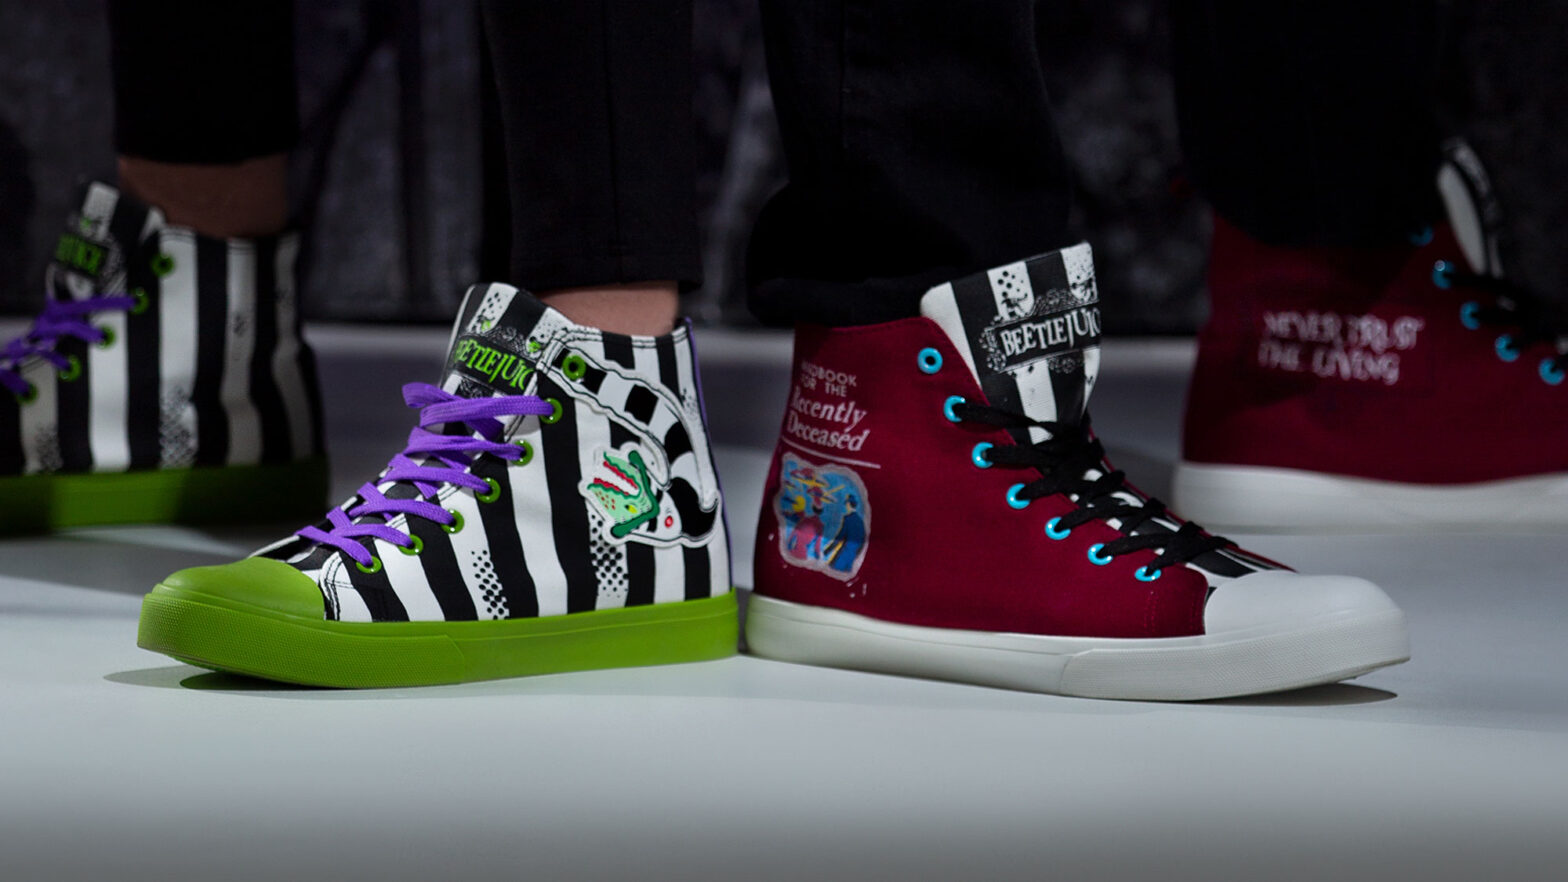 Officially Licensed Beetlejuice Shoes